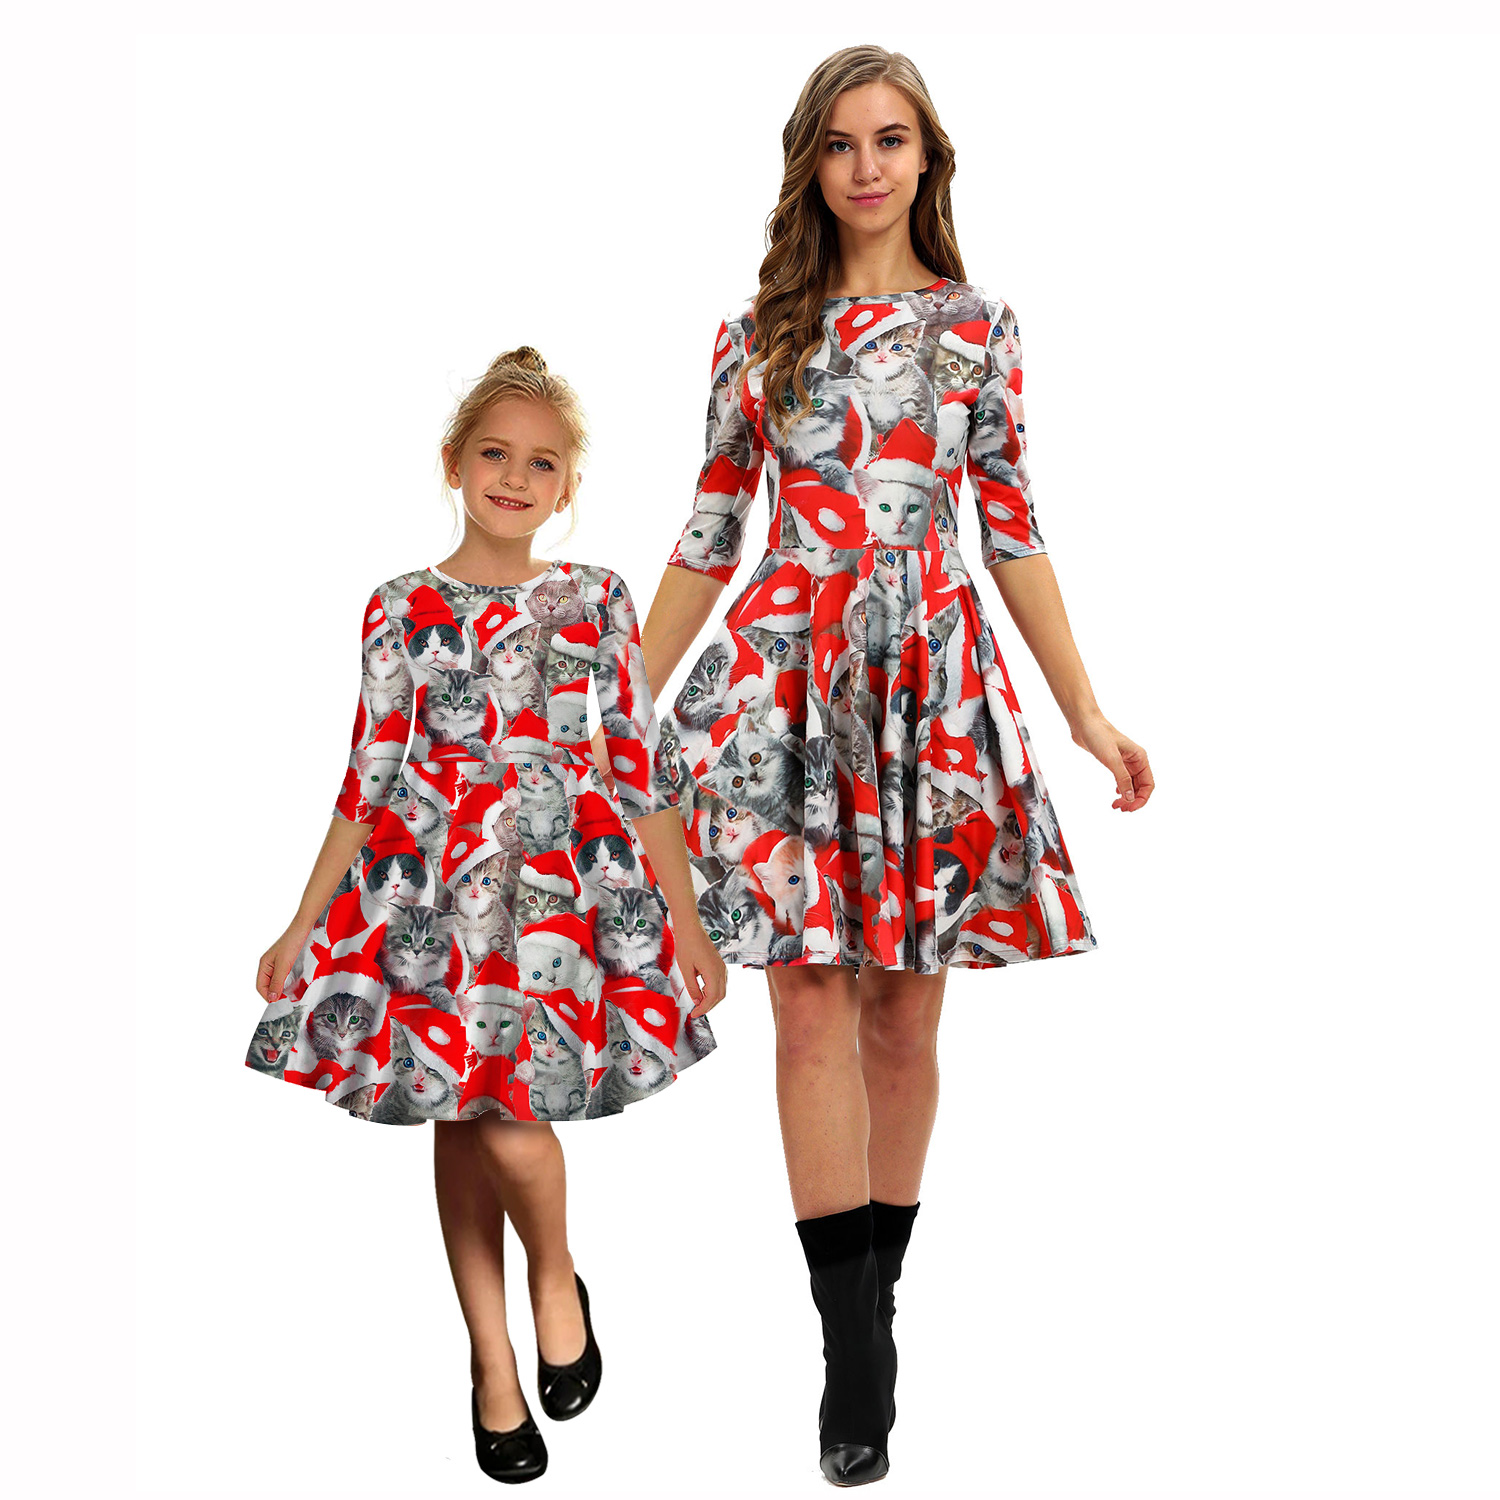 Cats Print Christmas Dress Mother Daughter Mommy And Me Clothes Family Matching Outfits Look Women Girls Mom Mum & Baby Dresses